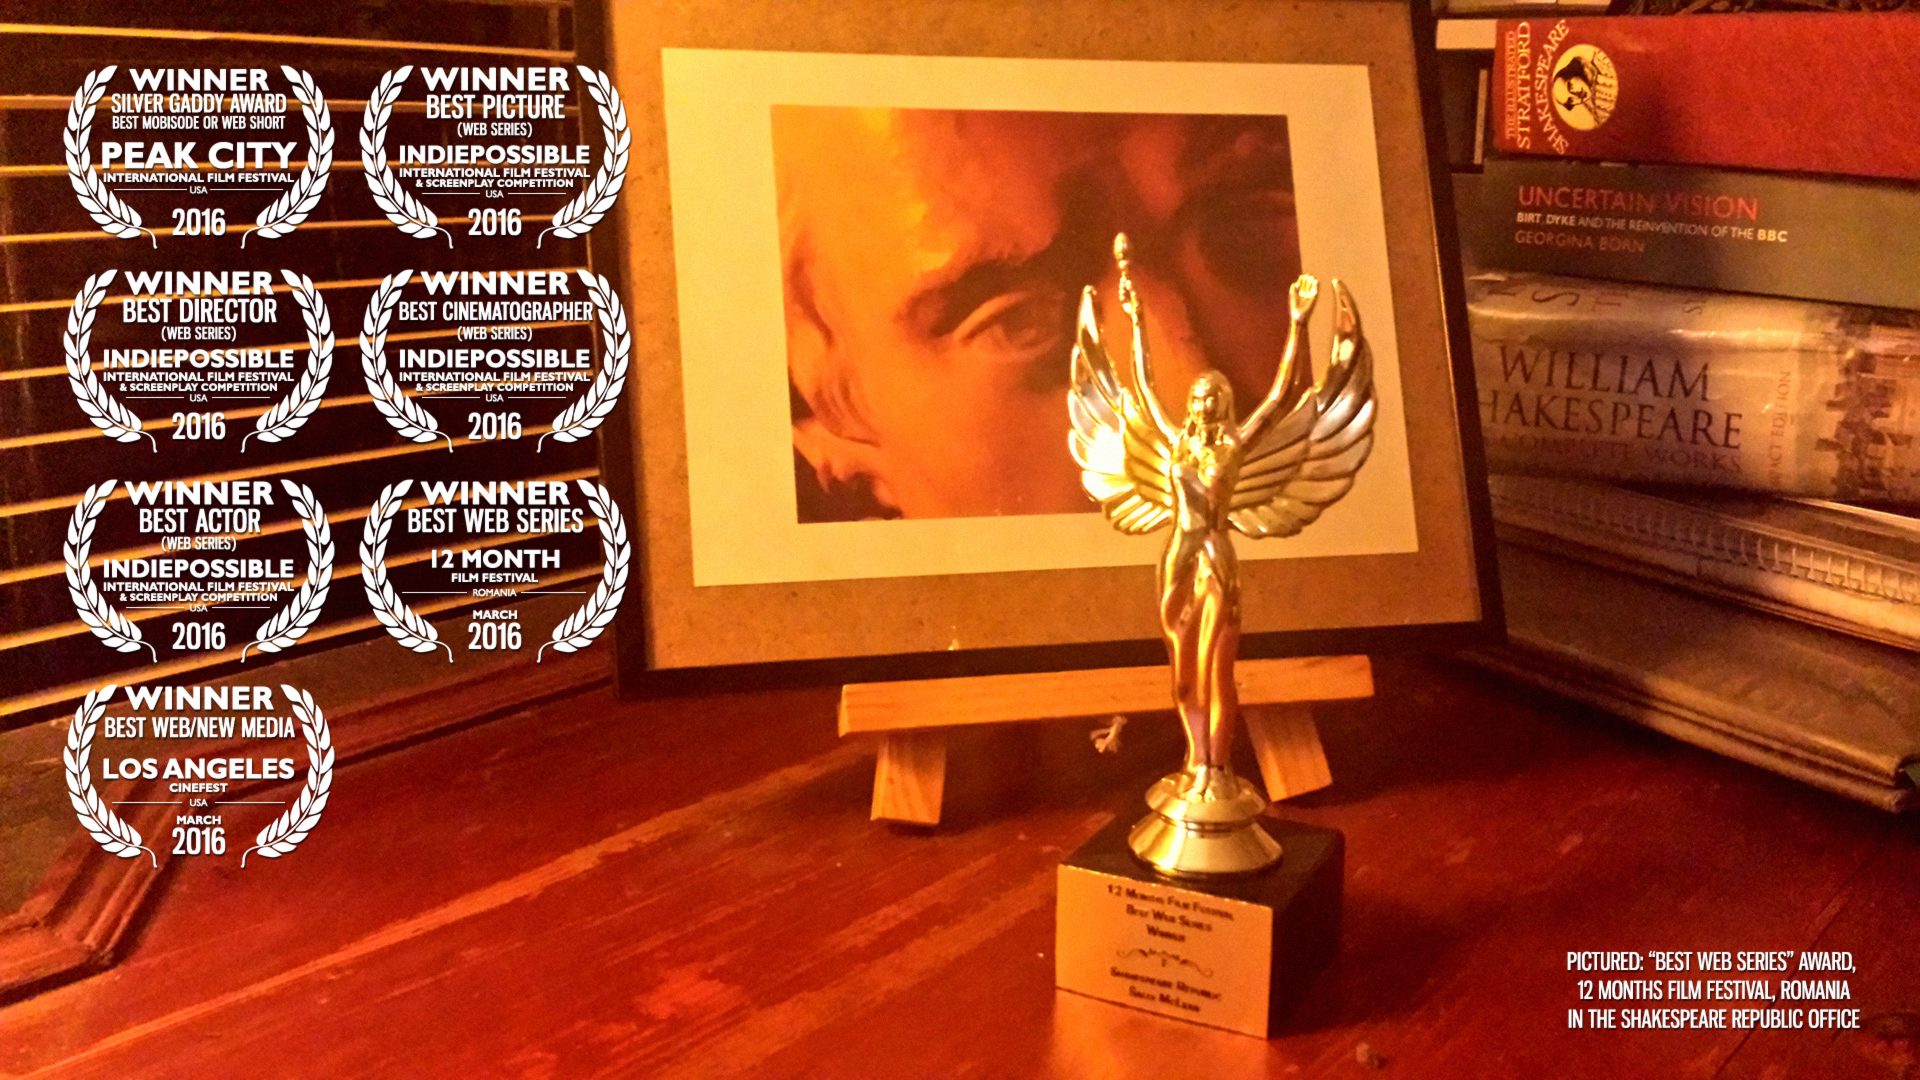 "Pictured: ""Best Web Series"" Award from 12MFF, Romania in the Shakespeare Republic office"